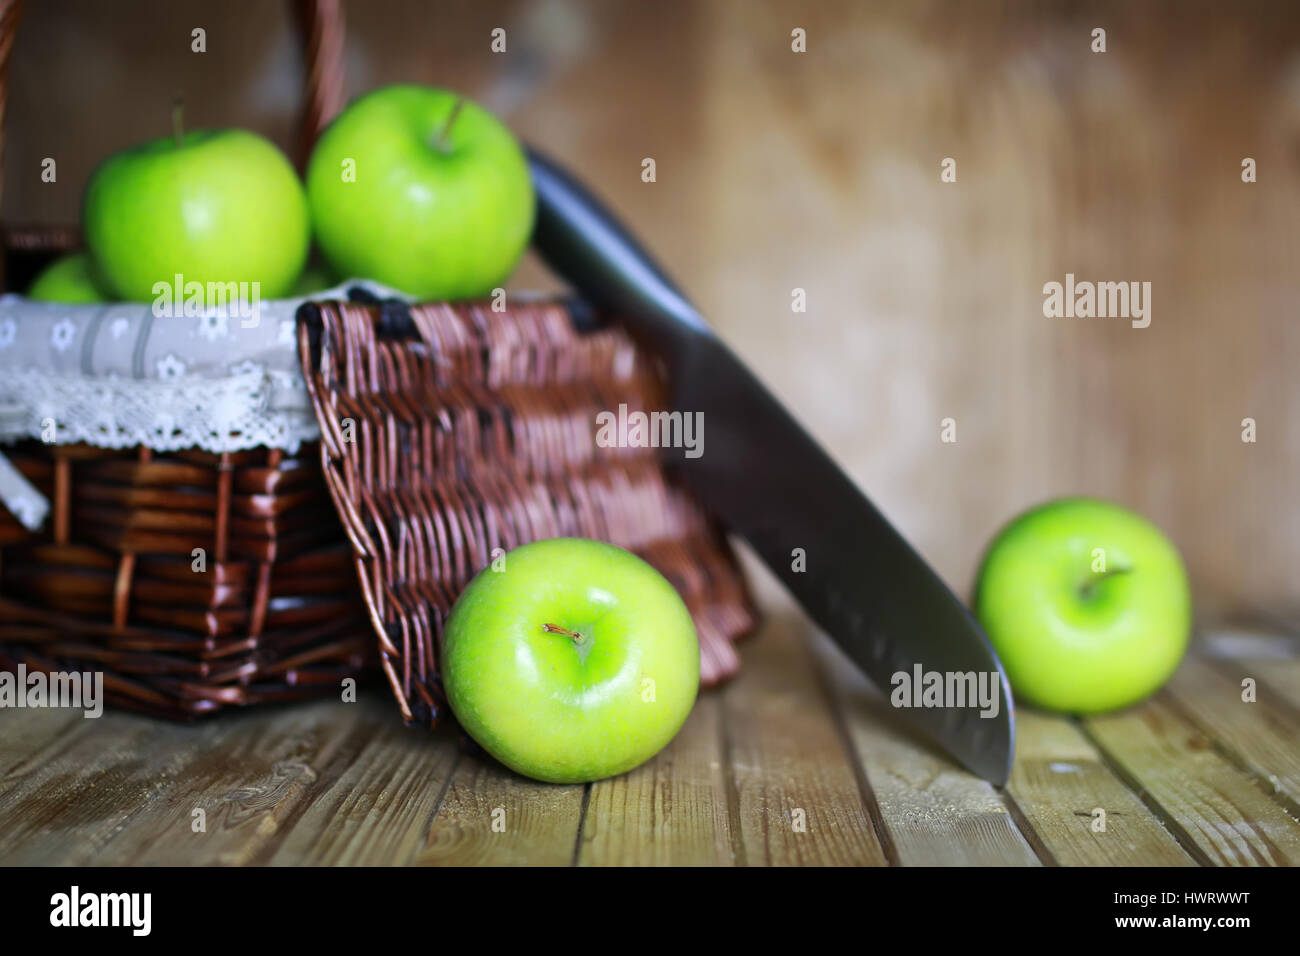 green apple in a basket - Stock Image